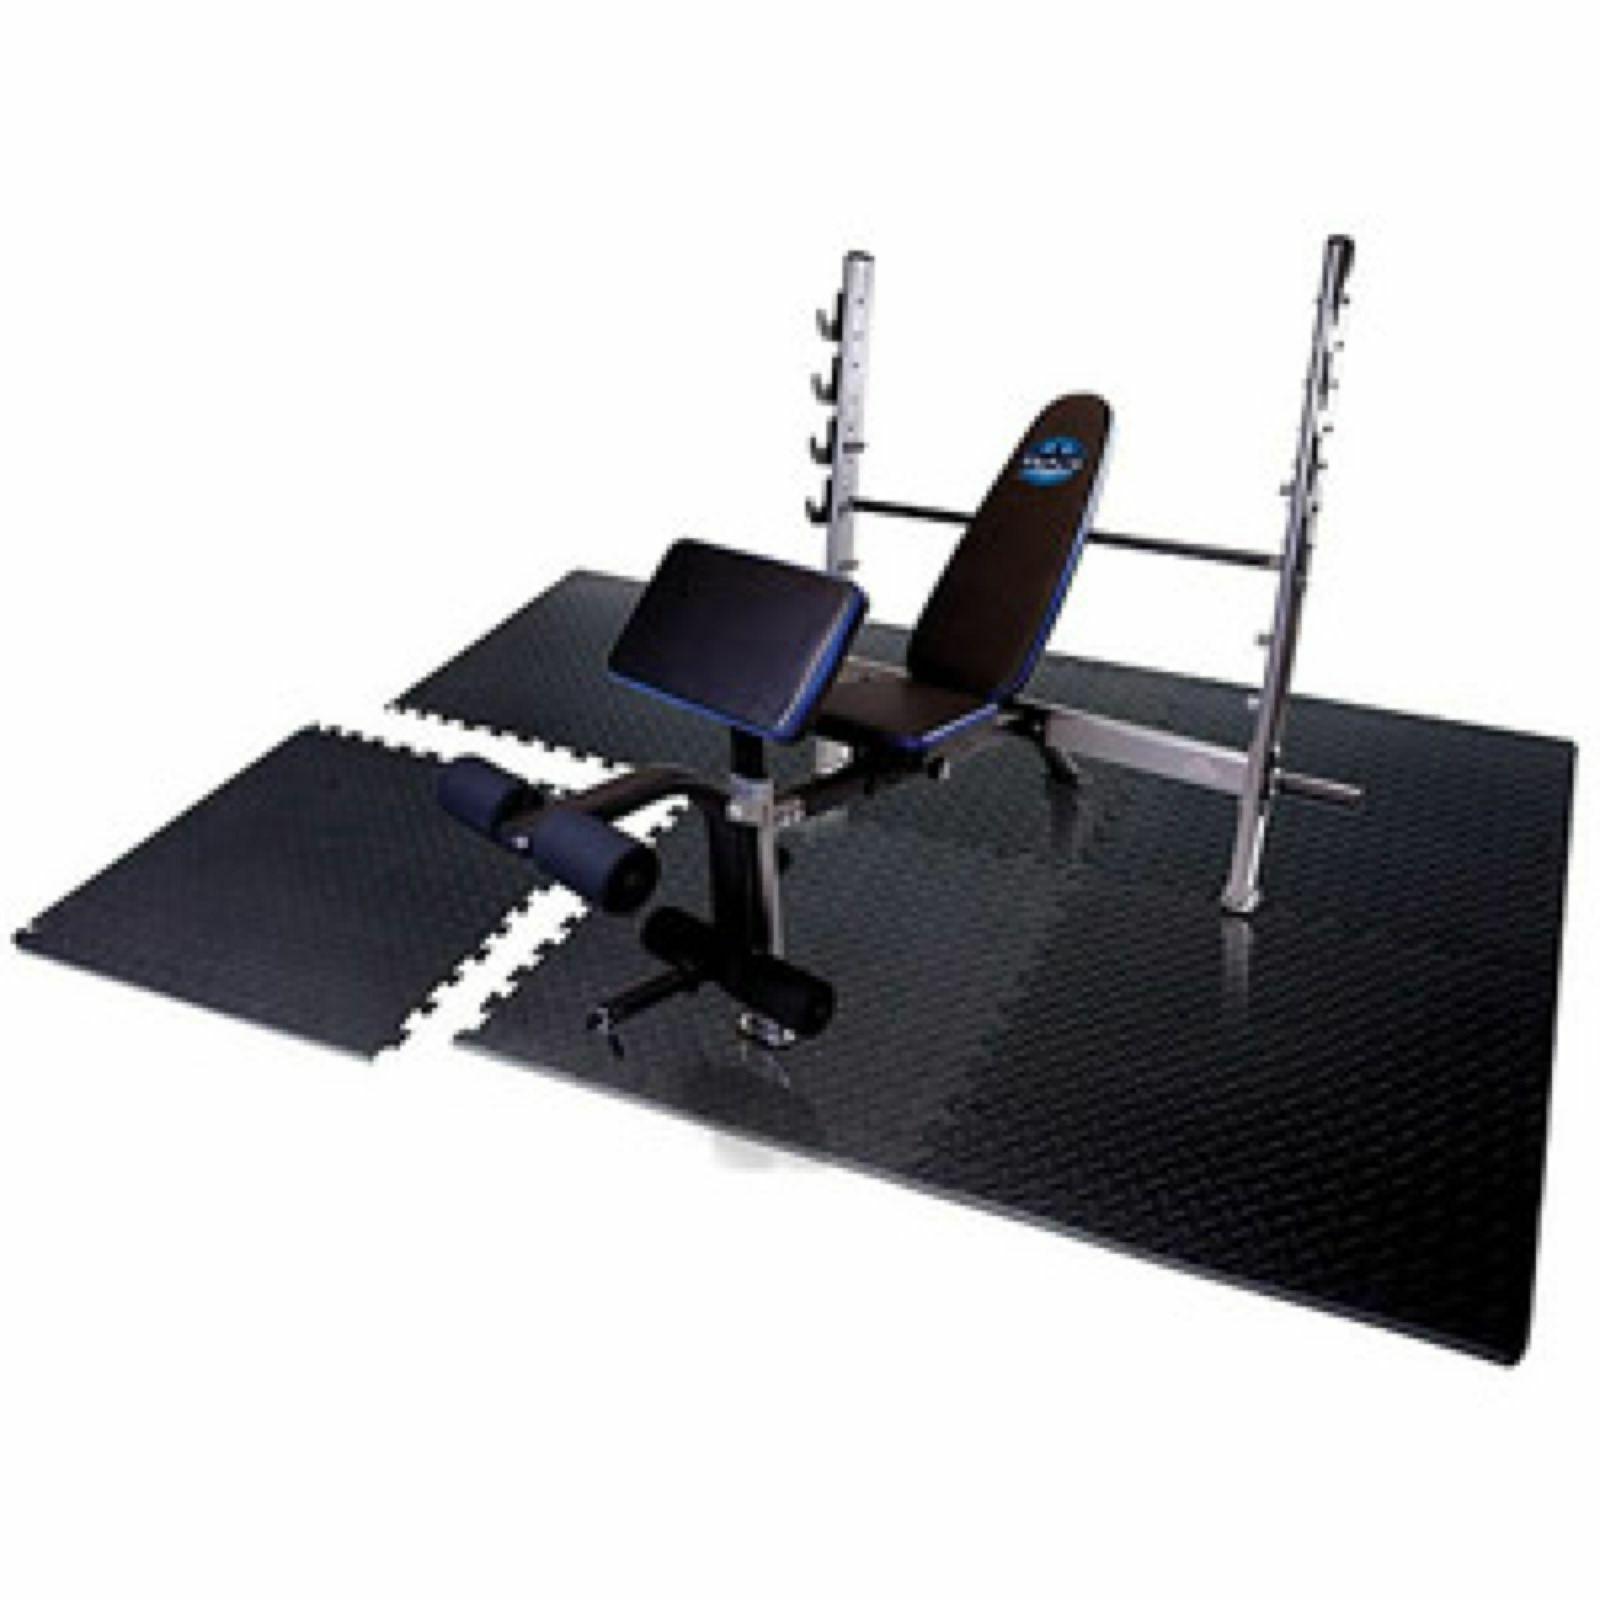 Exercise Flooring Tiles Puzzle Workout Equipment